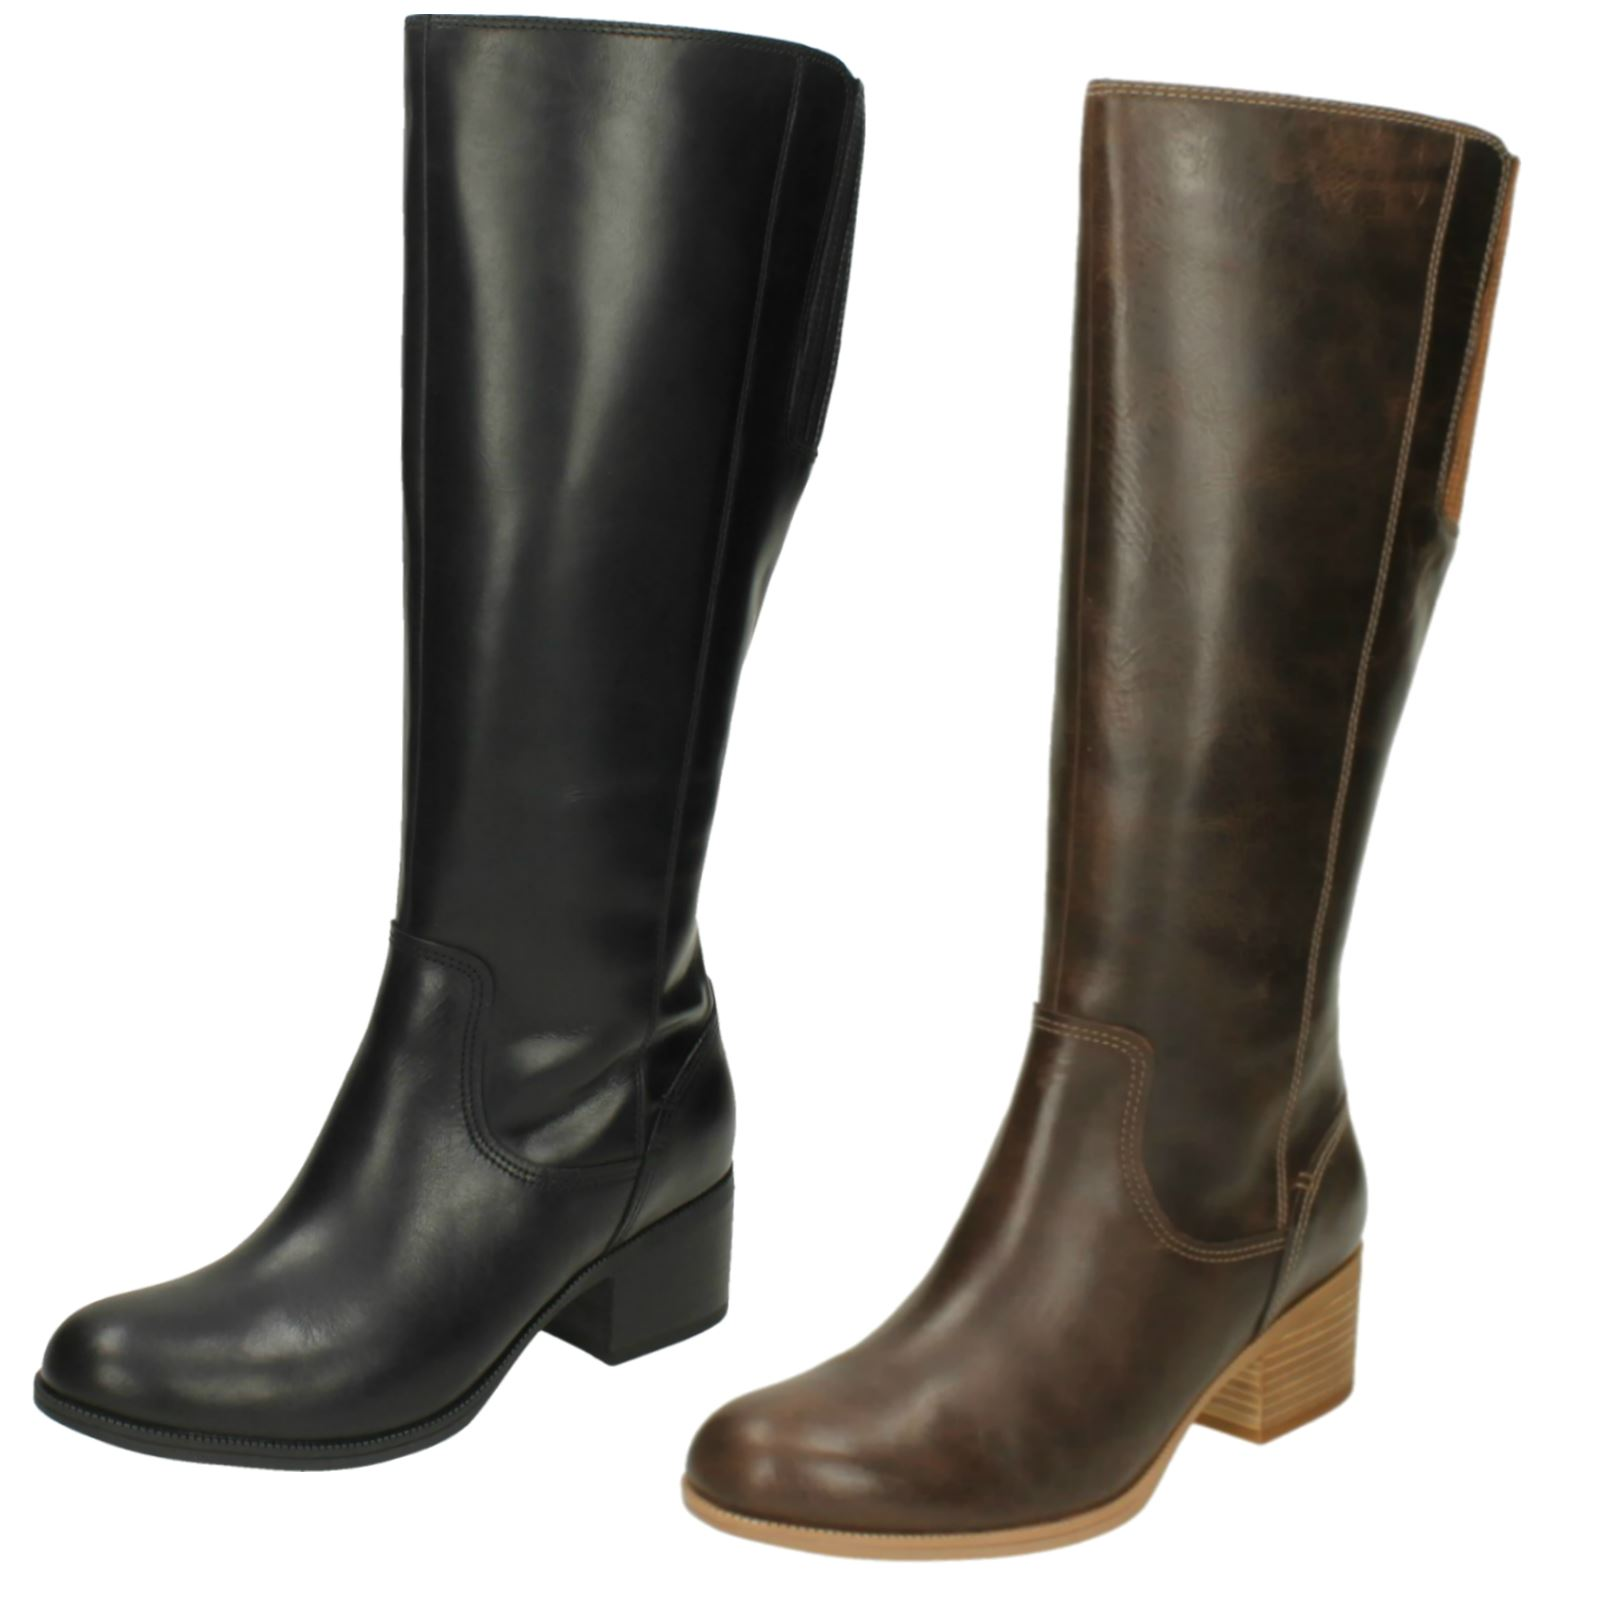 1e73d5b0df0 Details about Ladies Clarks Casual Knee Length Heeled Zip Up Leather Boots  Maypearl Viola